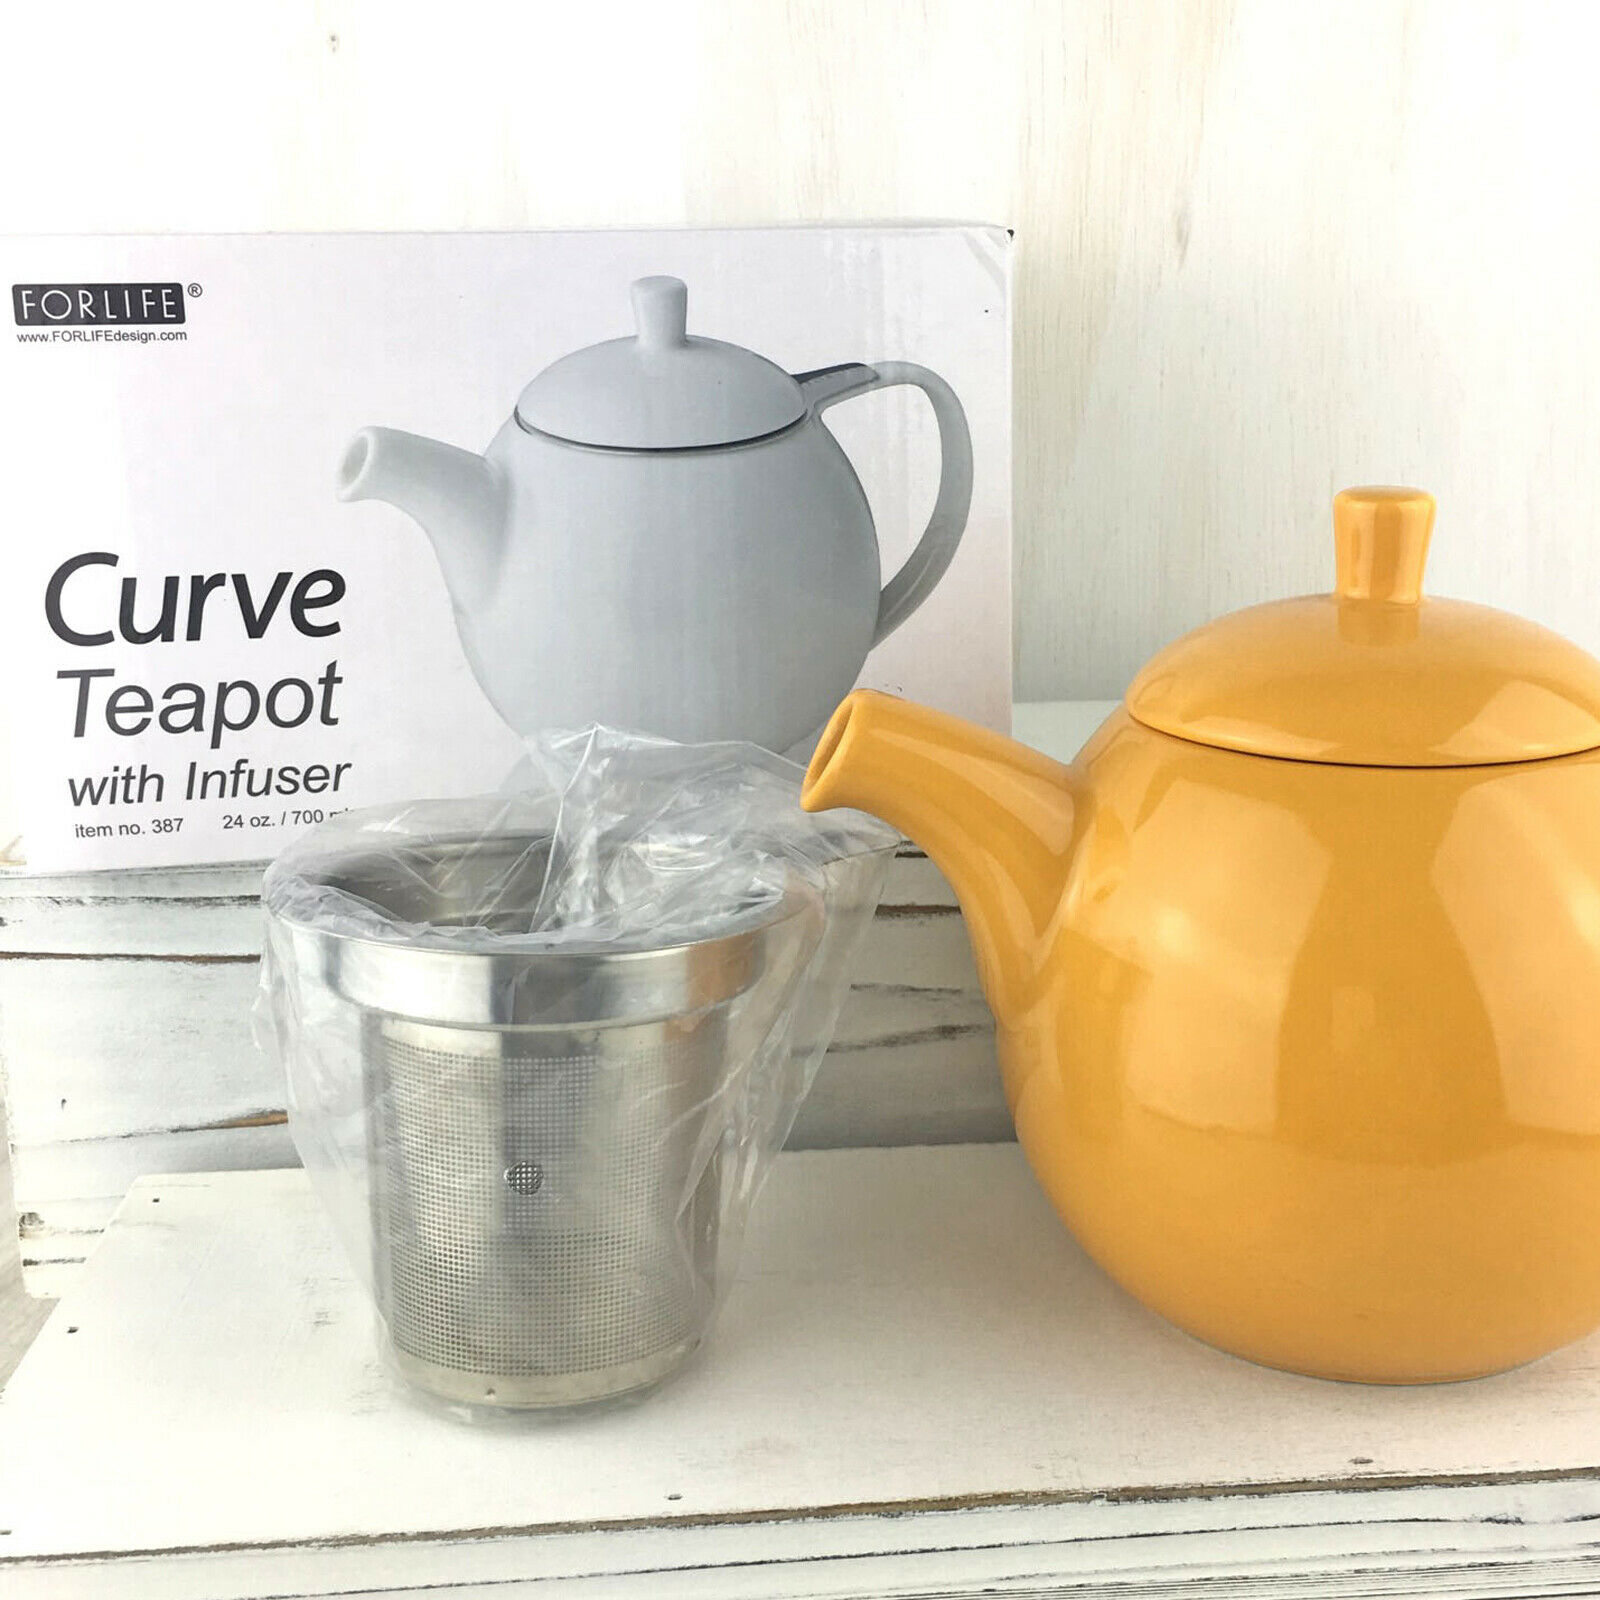 FORLIFE Curve Teapot with Infuser 24-Ounce Mandrin Yellow Te